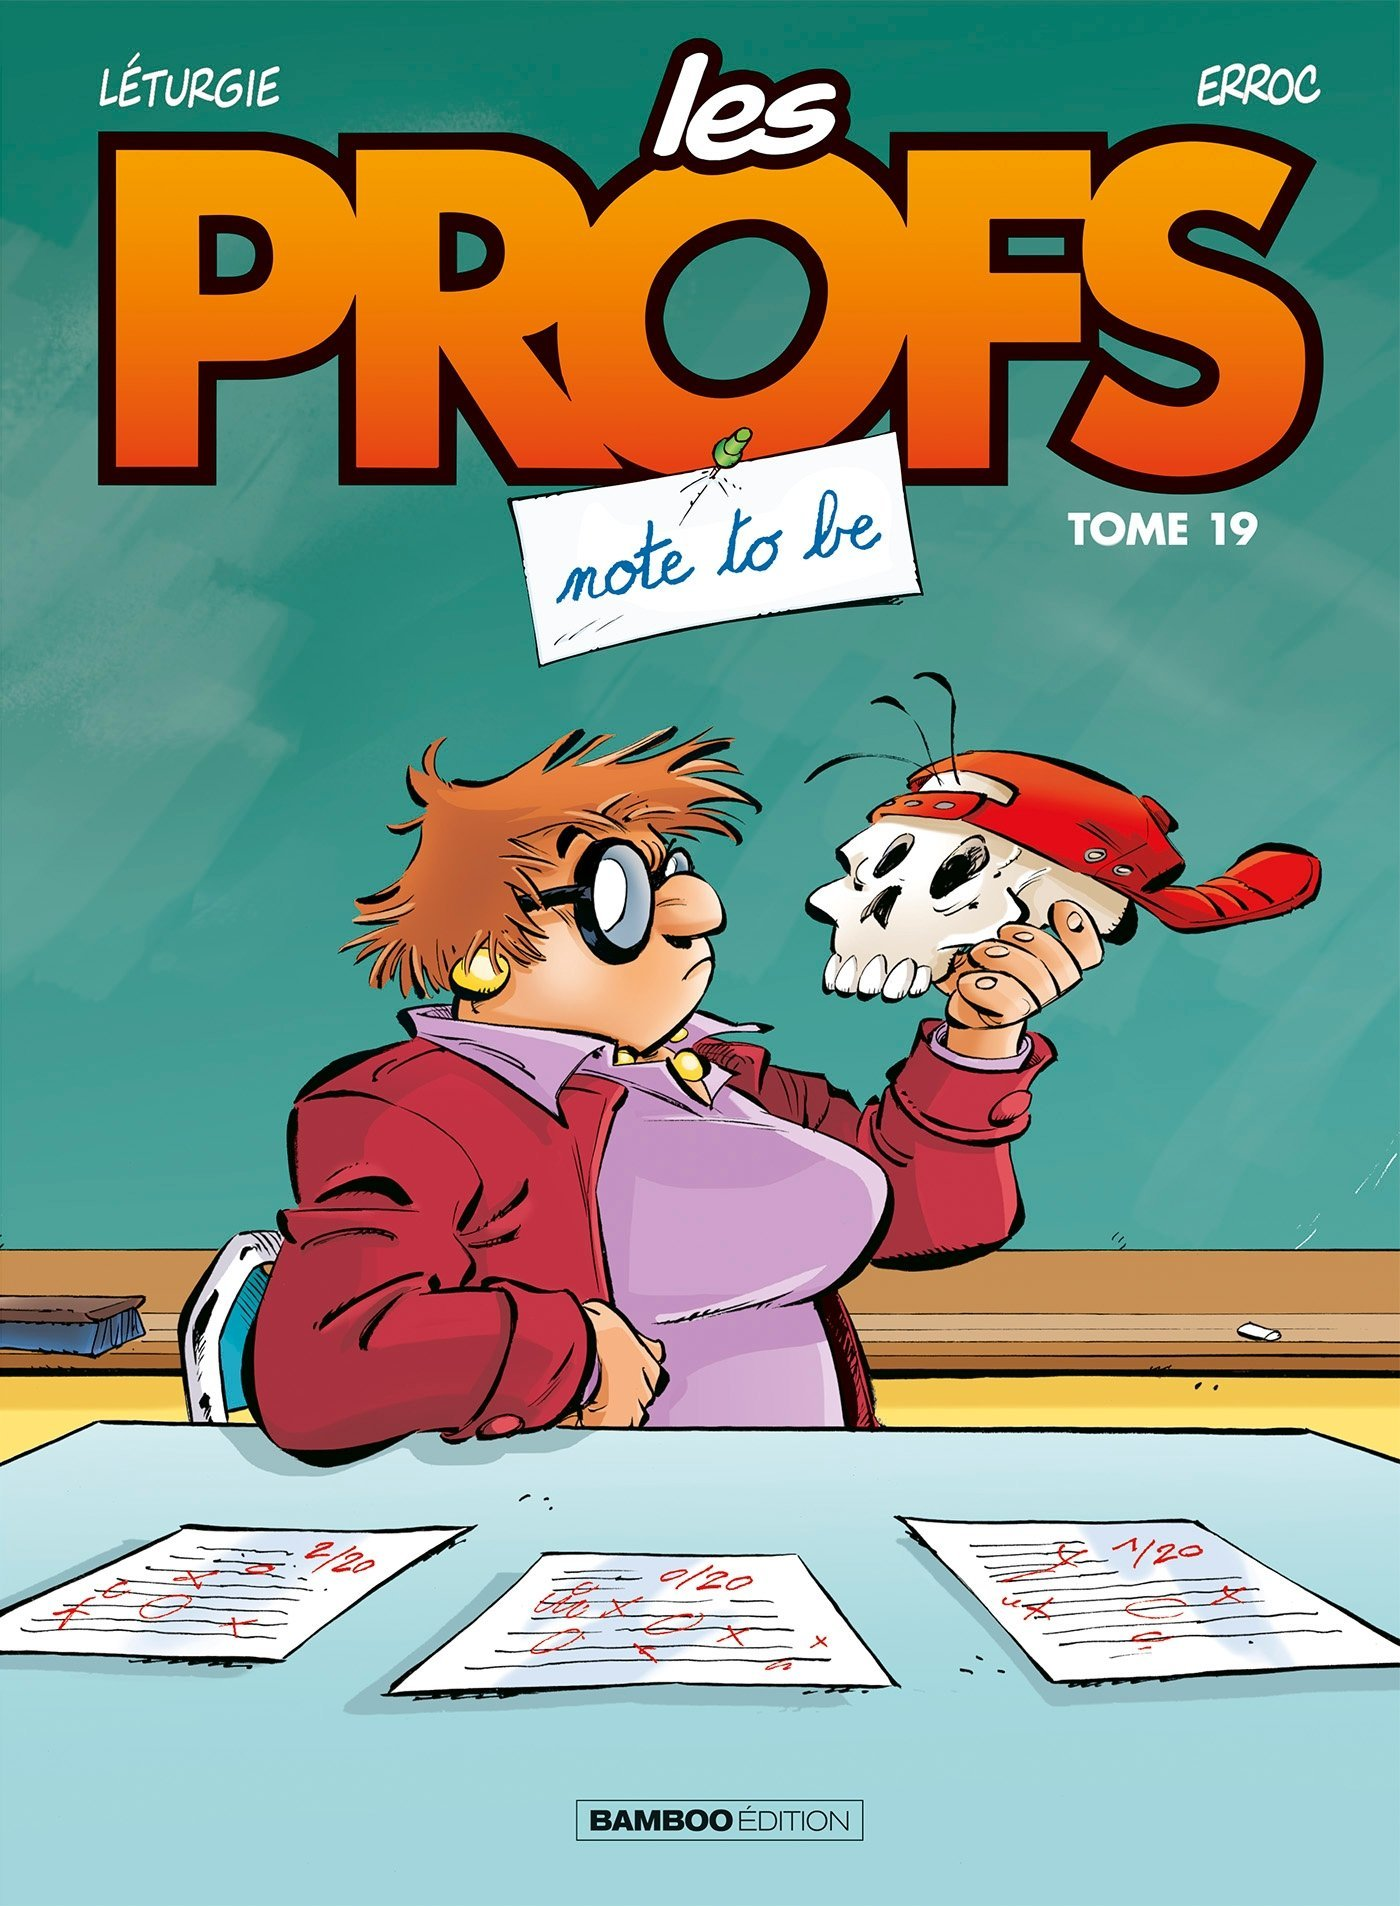 Les Profs - Tome 19 : Note to be